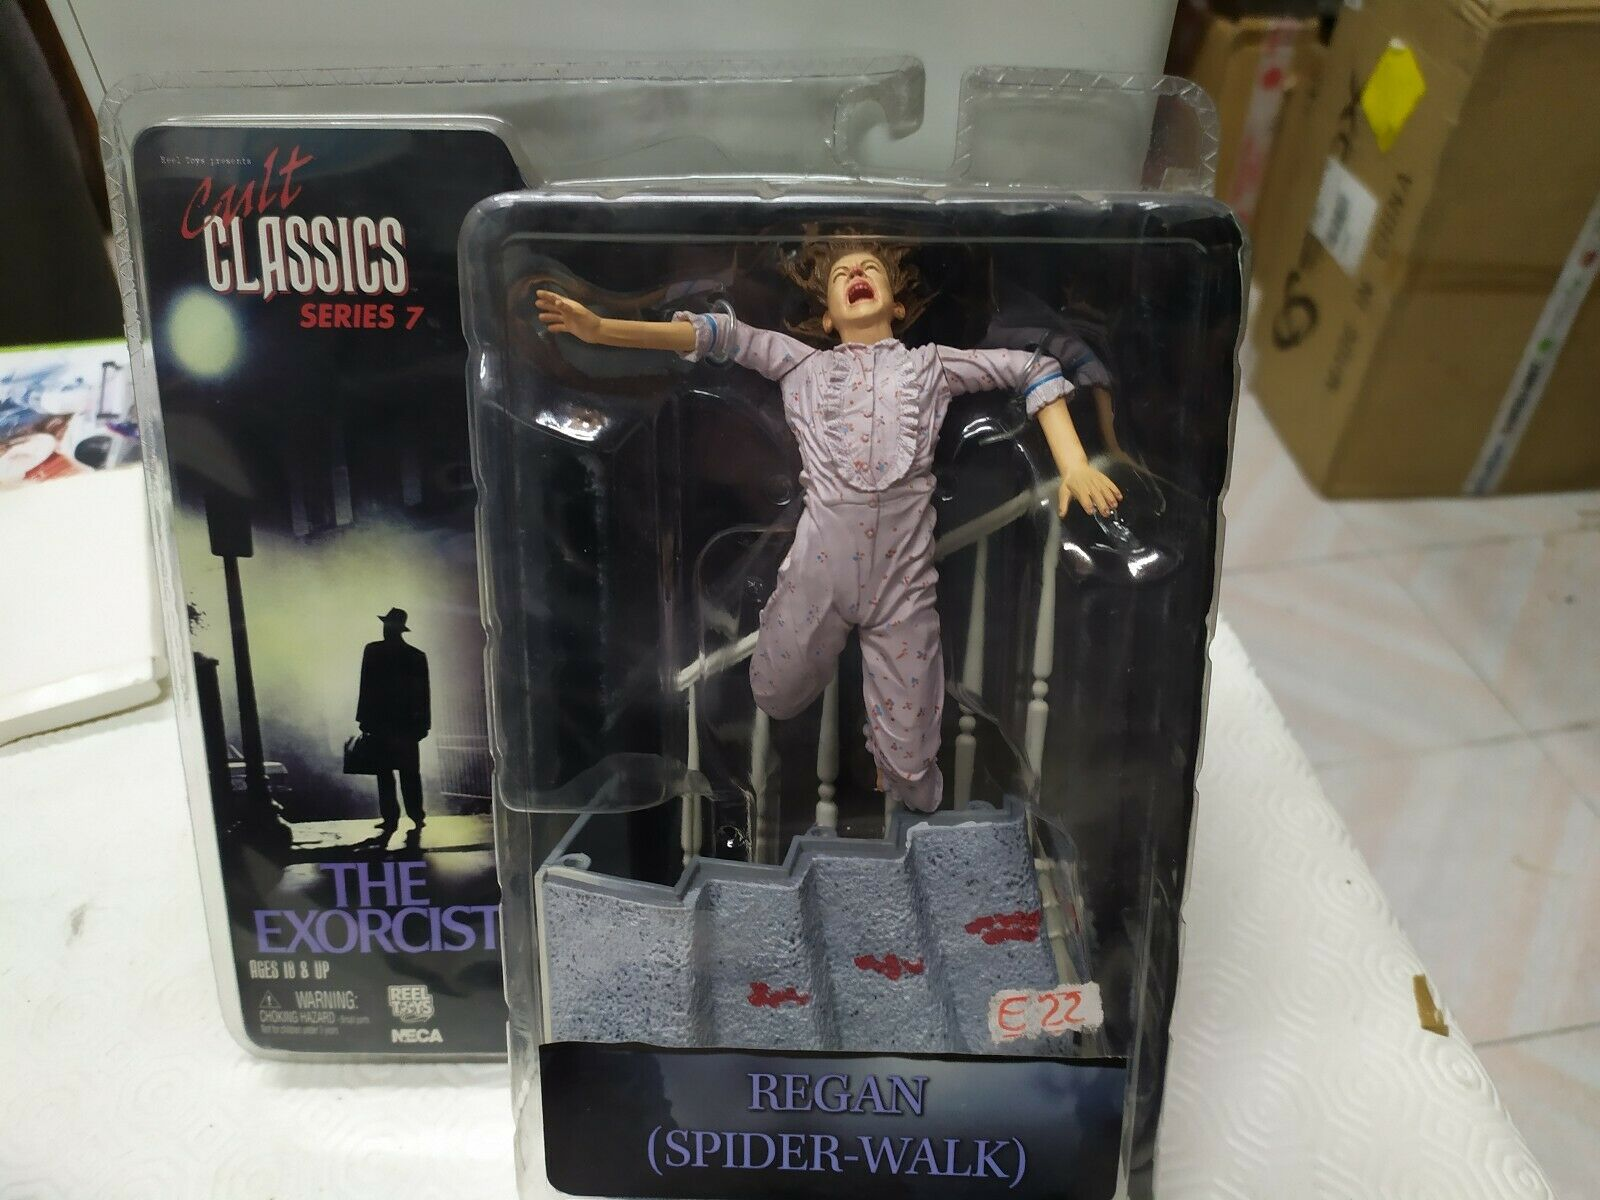 CULT CLASSICS SERIES 7 THE EXORCIST REGAN (SPIDER-WALK) ACTION FIGURE